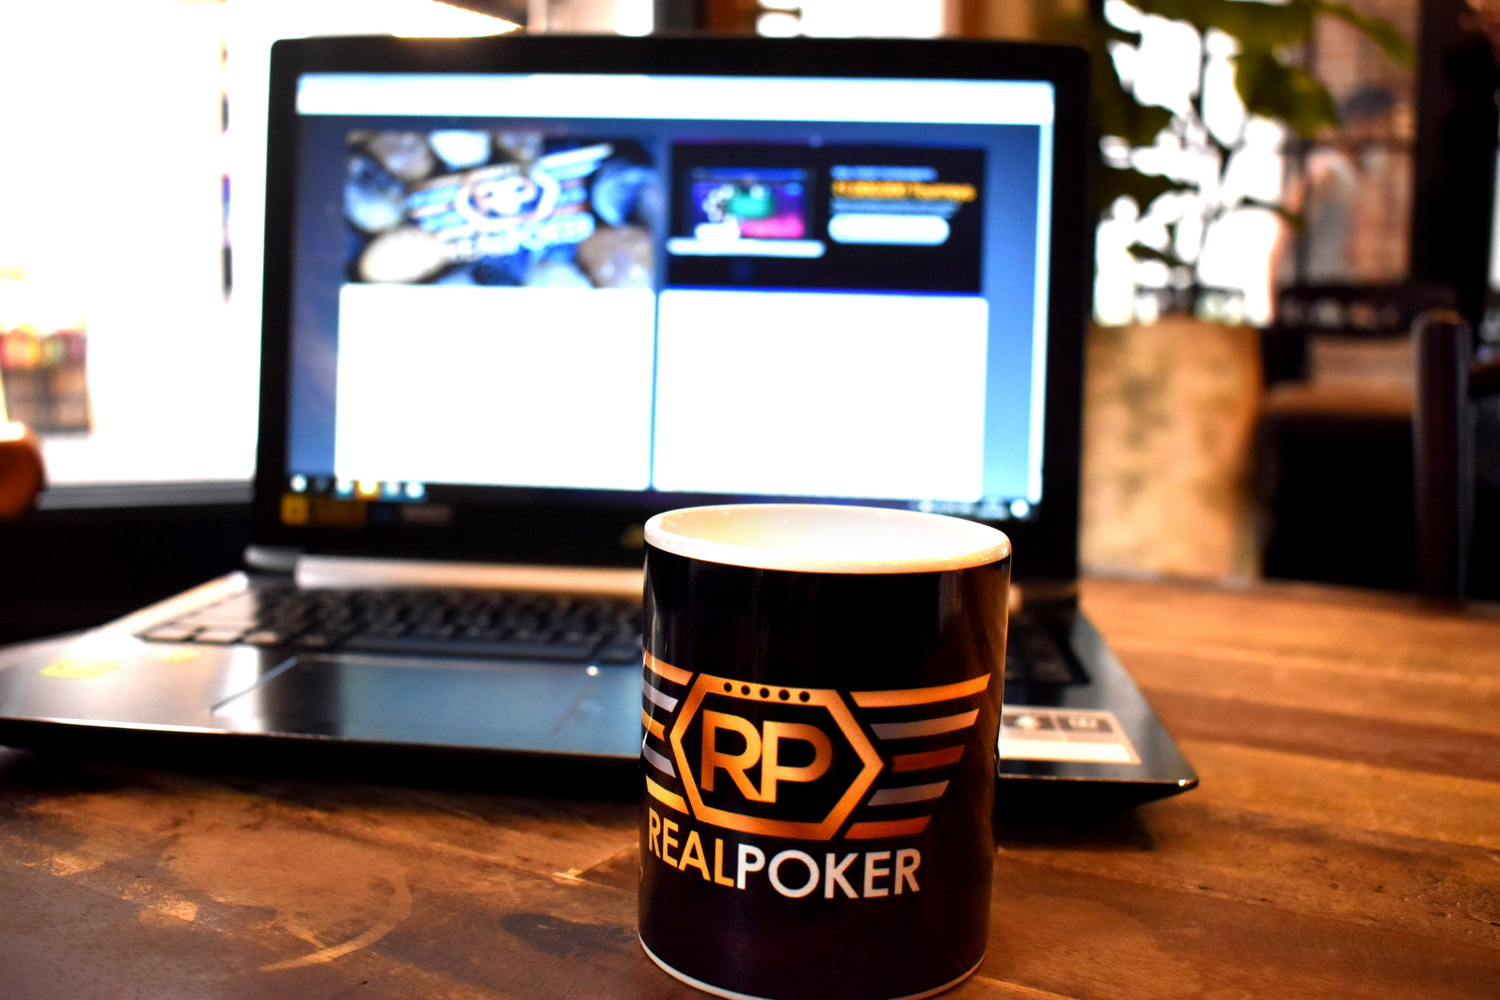 Real Poker Coffee Cup